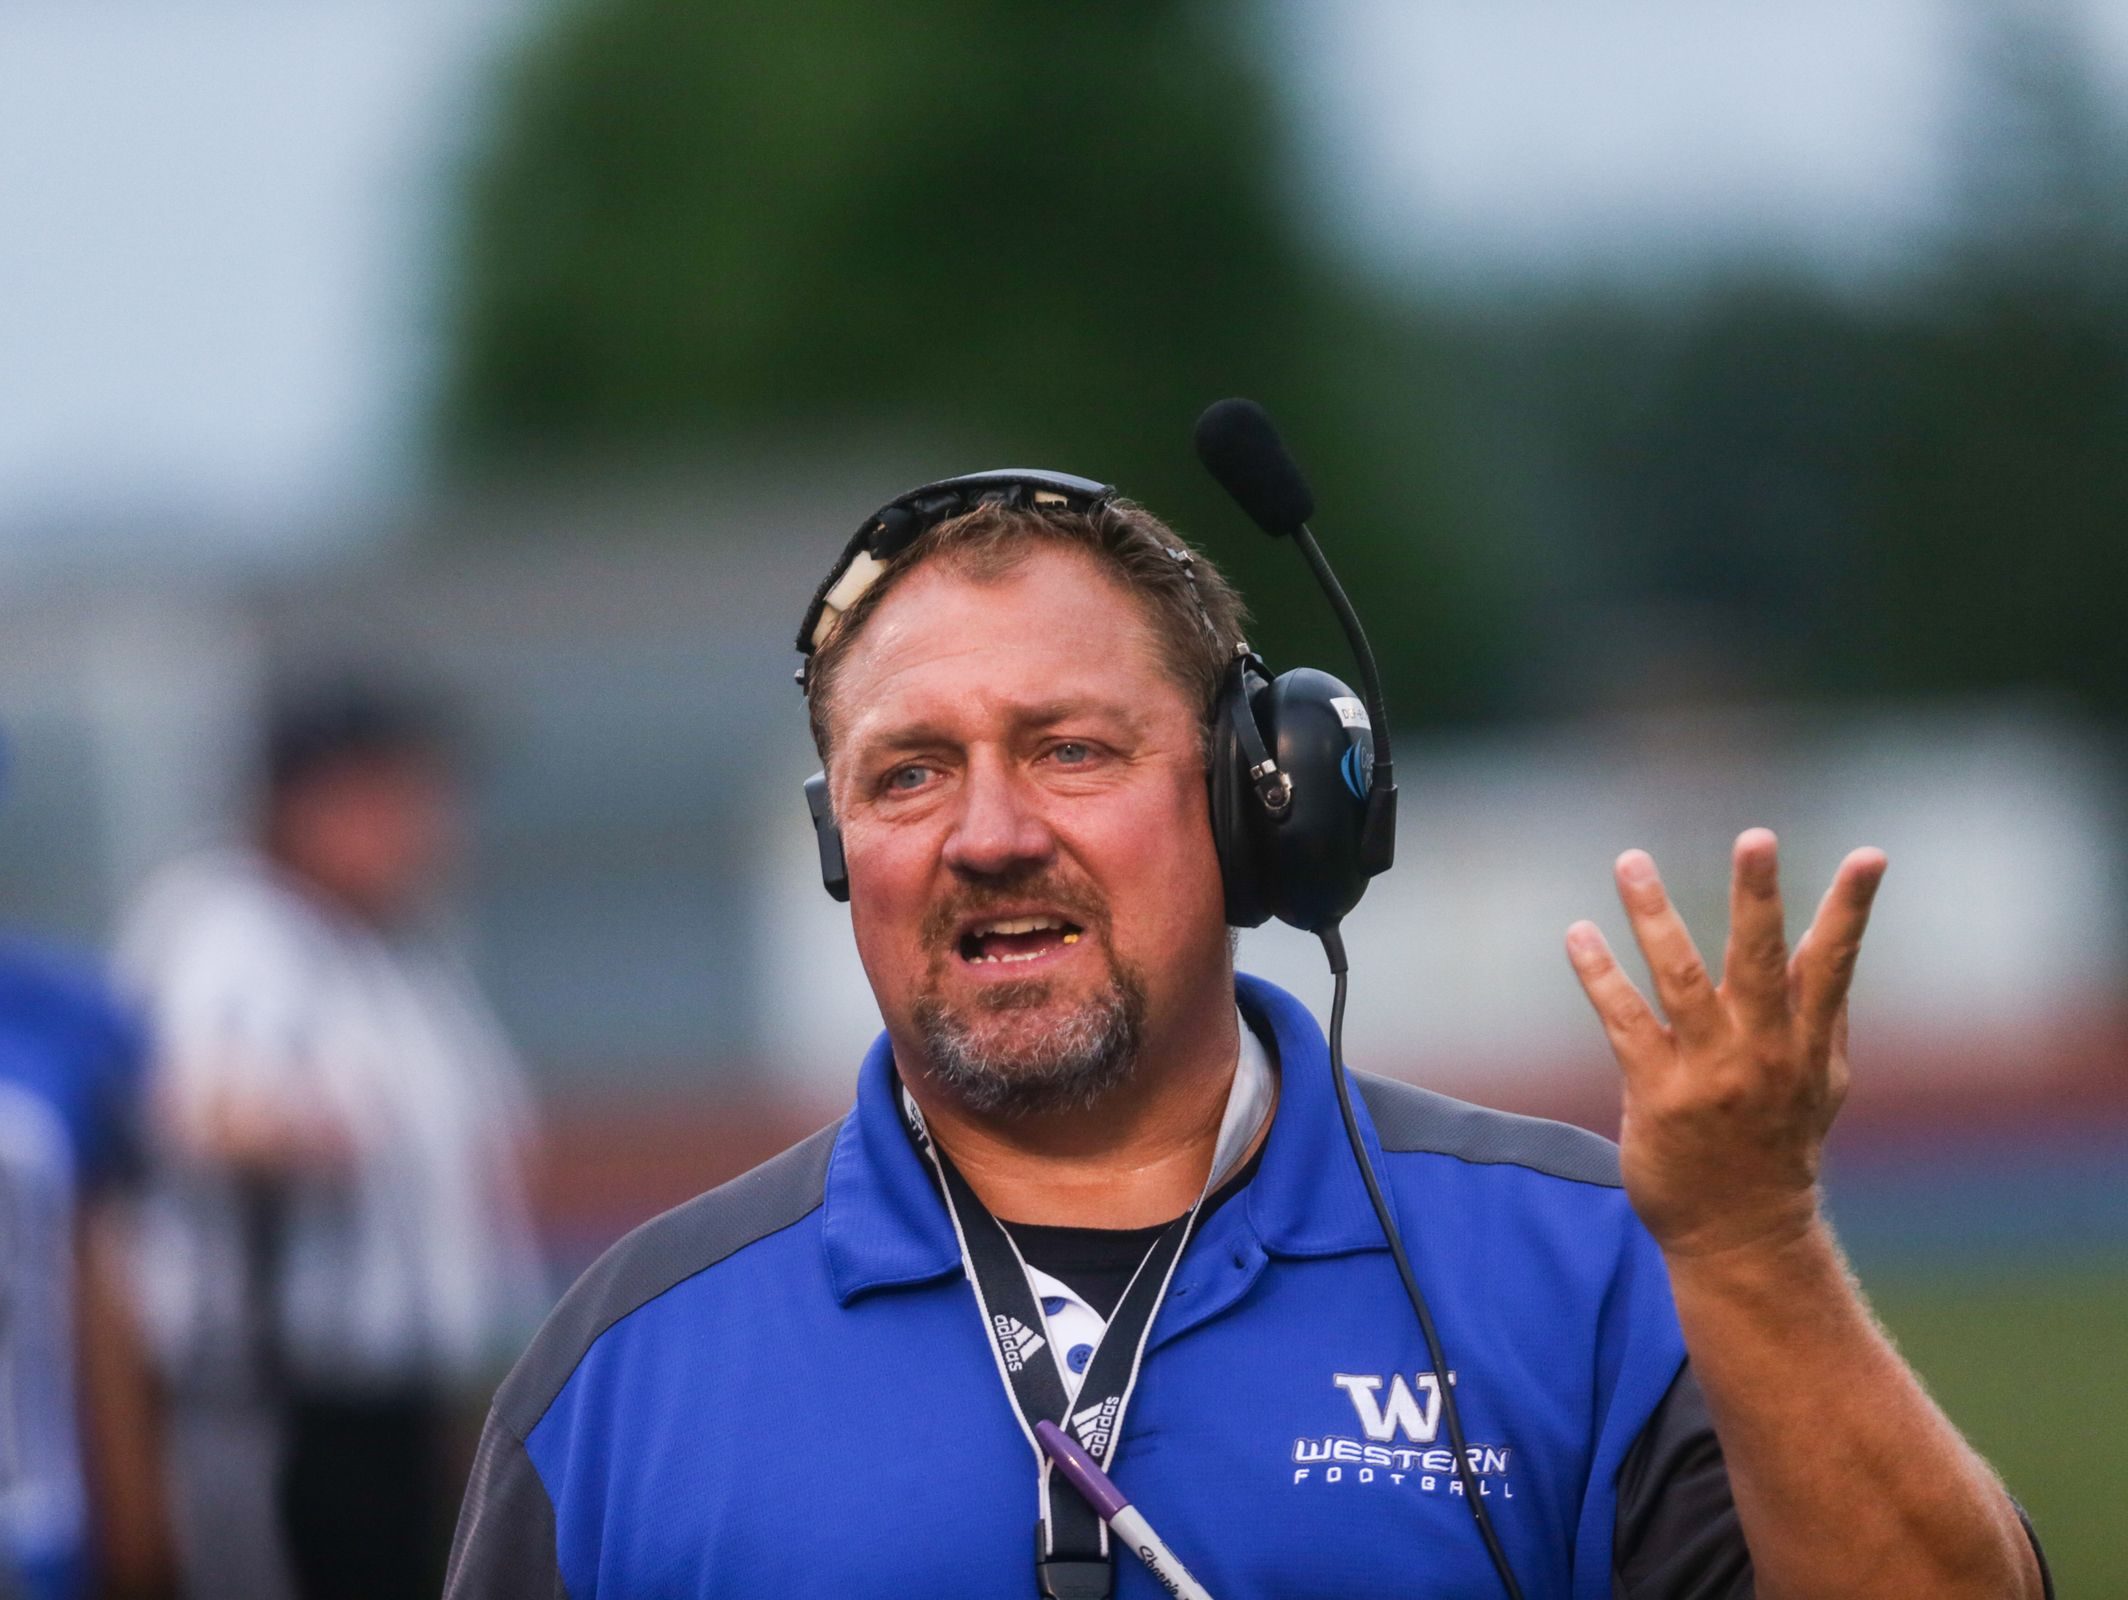 Walled Lake Western's head coach Mike Zdebski on the sideline against Northville on Monday, September 9, 2016, at Warriors Stadium in Walled Lake, MI.